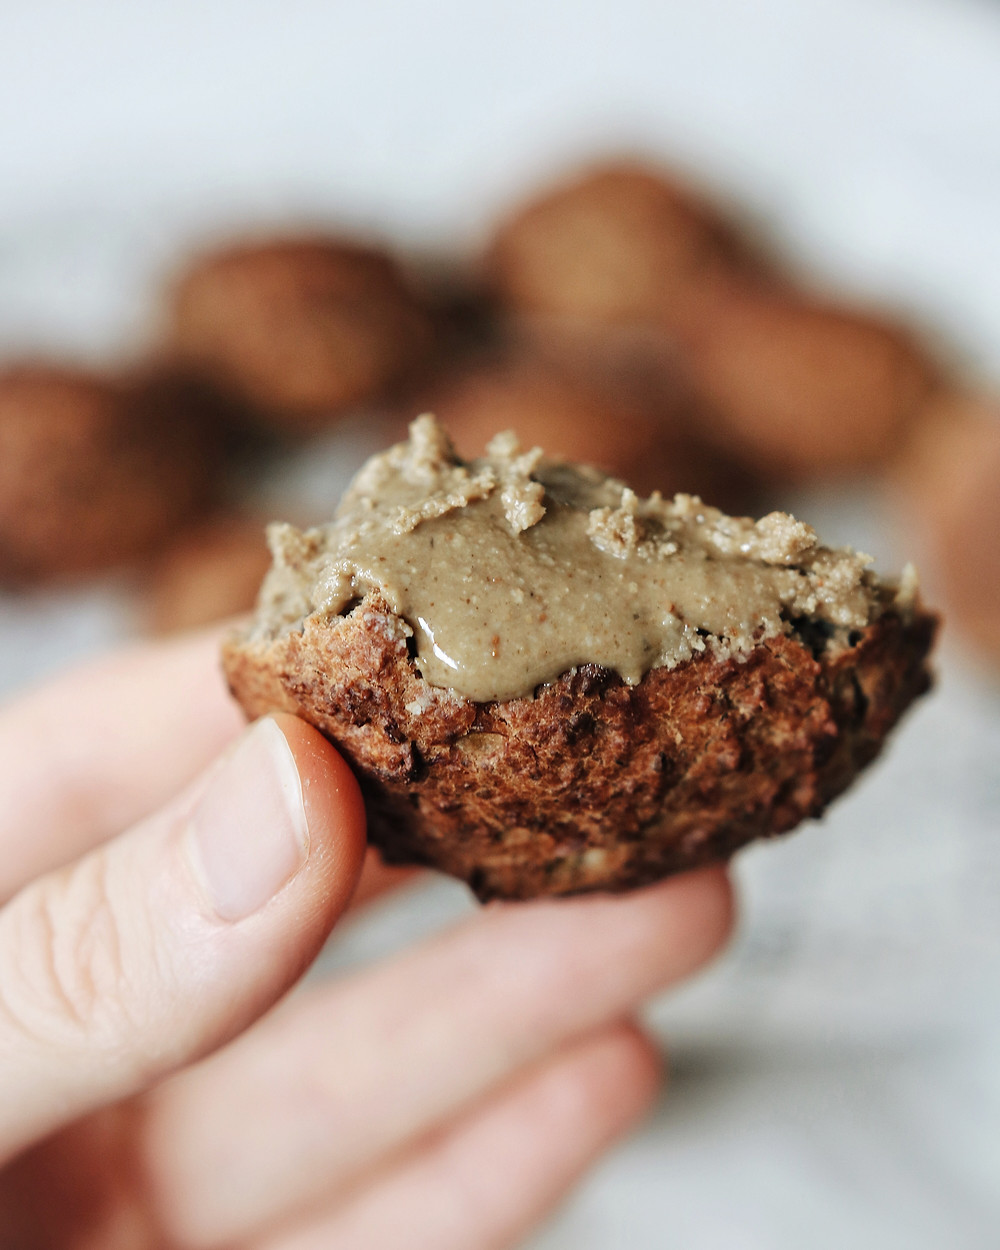 A closeup view of a banana bread cookie slathered with sunflower seed butter.